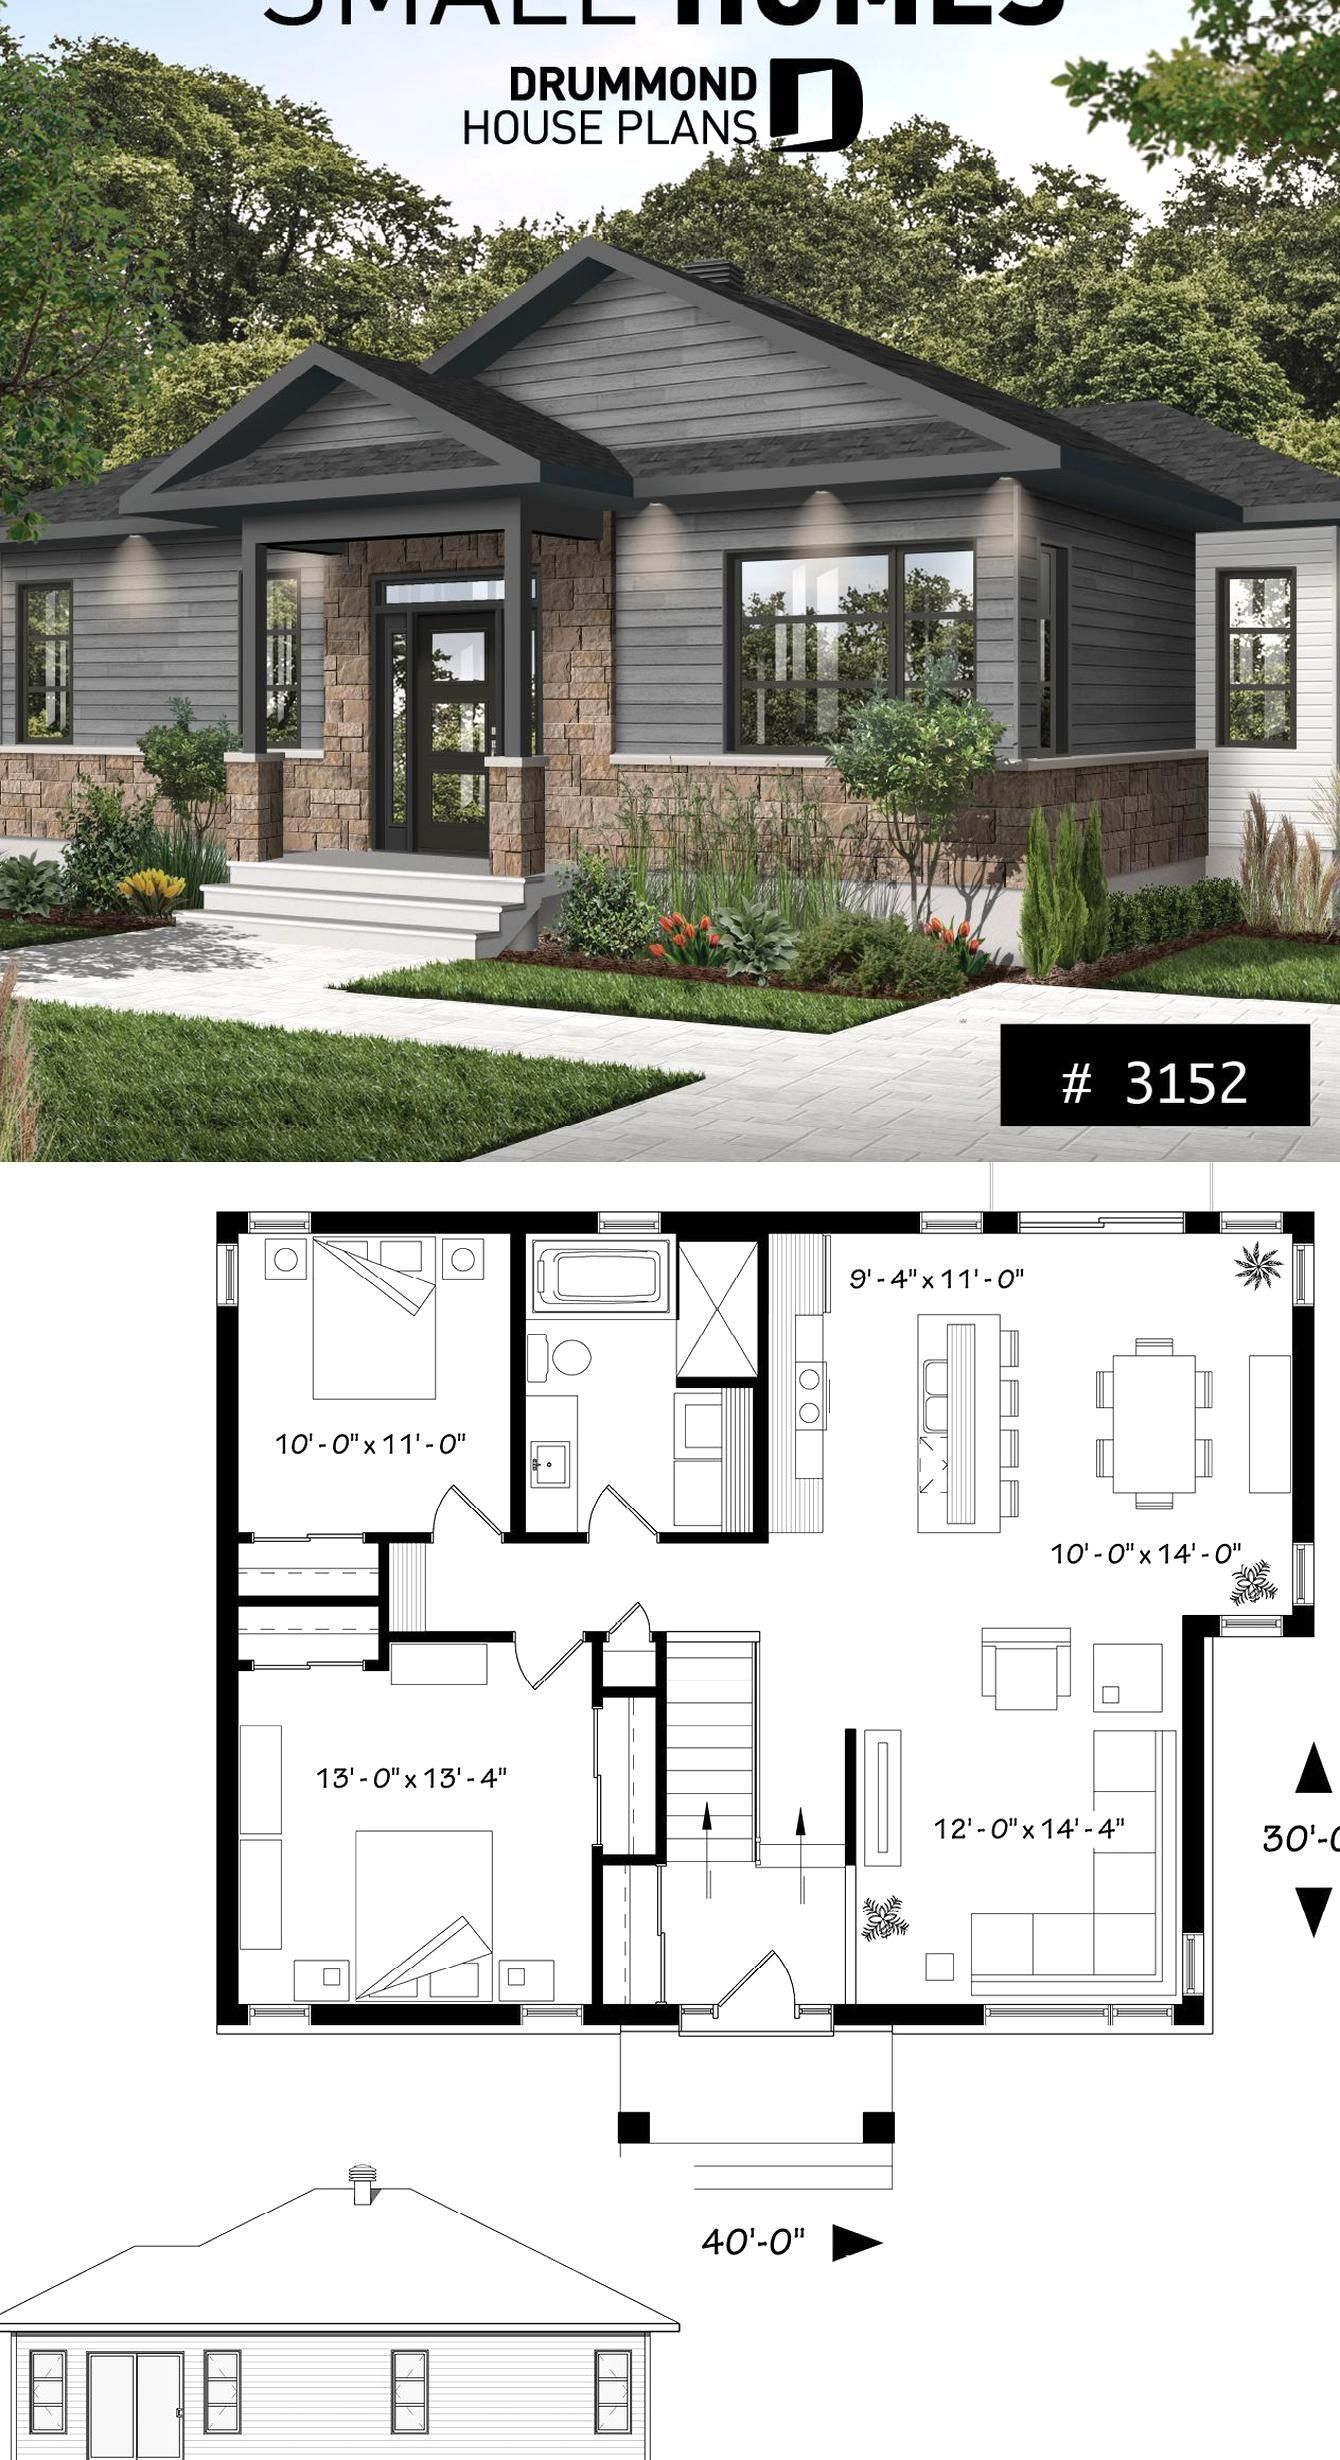 Small Modern Rustic Home 2 Bedroom Rustic Modern Home Plan Split Entry Large Kitchen Island Large Full B Modern House Plans Modern Rustic Homes Rustic House